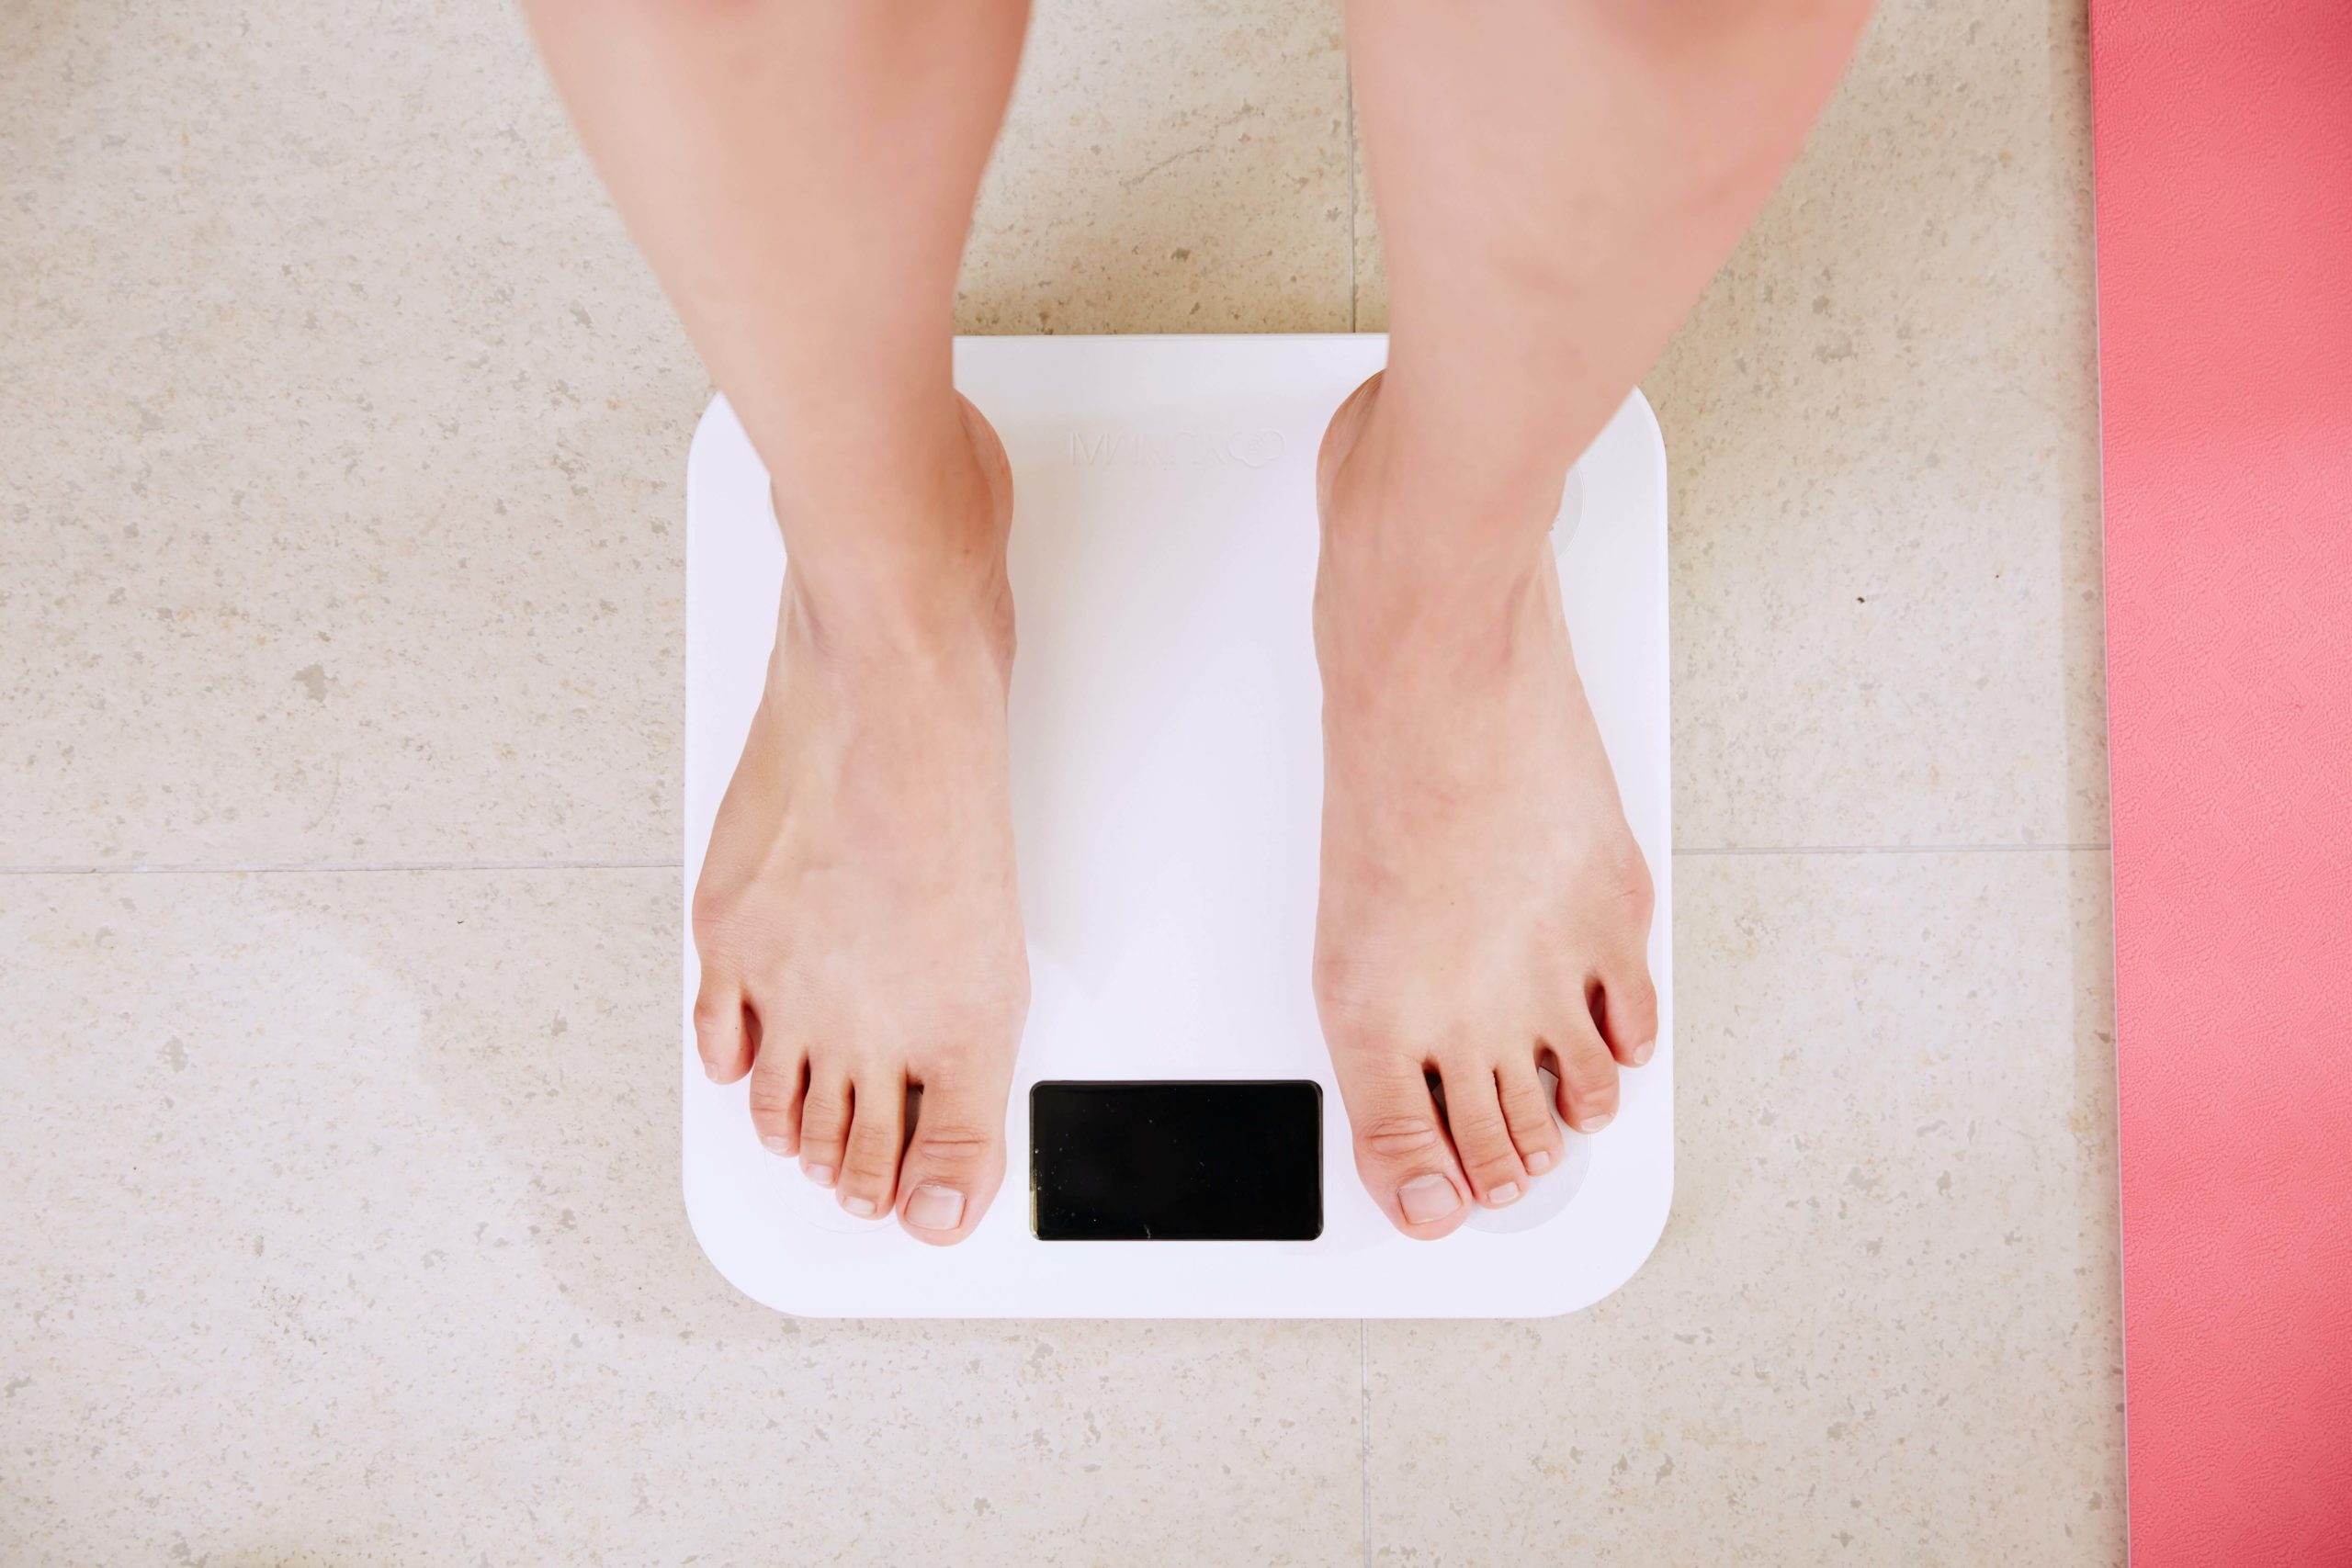 person-on-weighing-scale